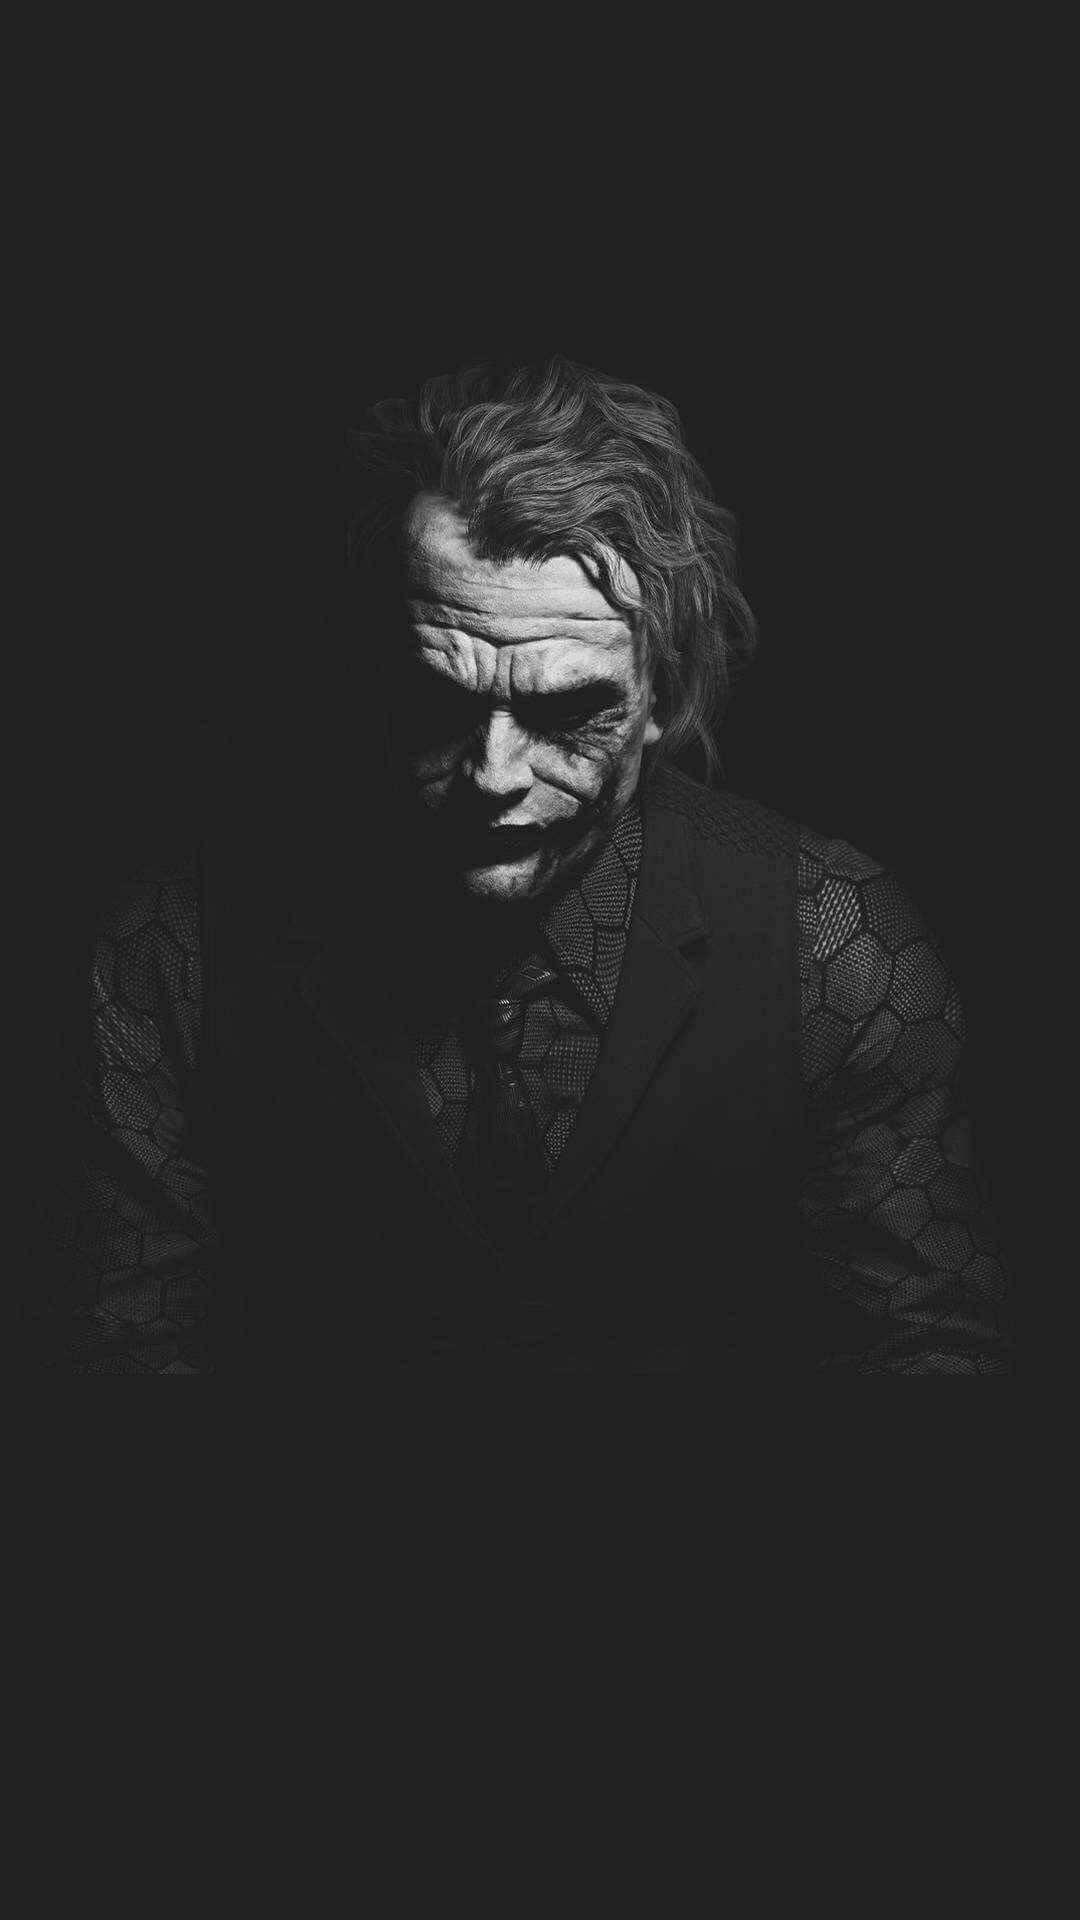 Pin By Italoco Games On Wallpapers Joker Pics Joker Wallpapers Joker Hd Wallpaper